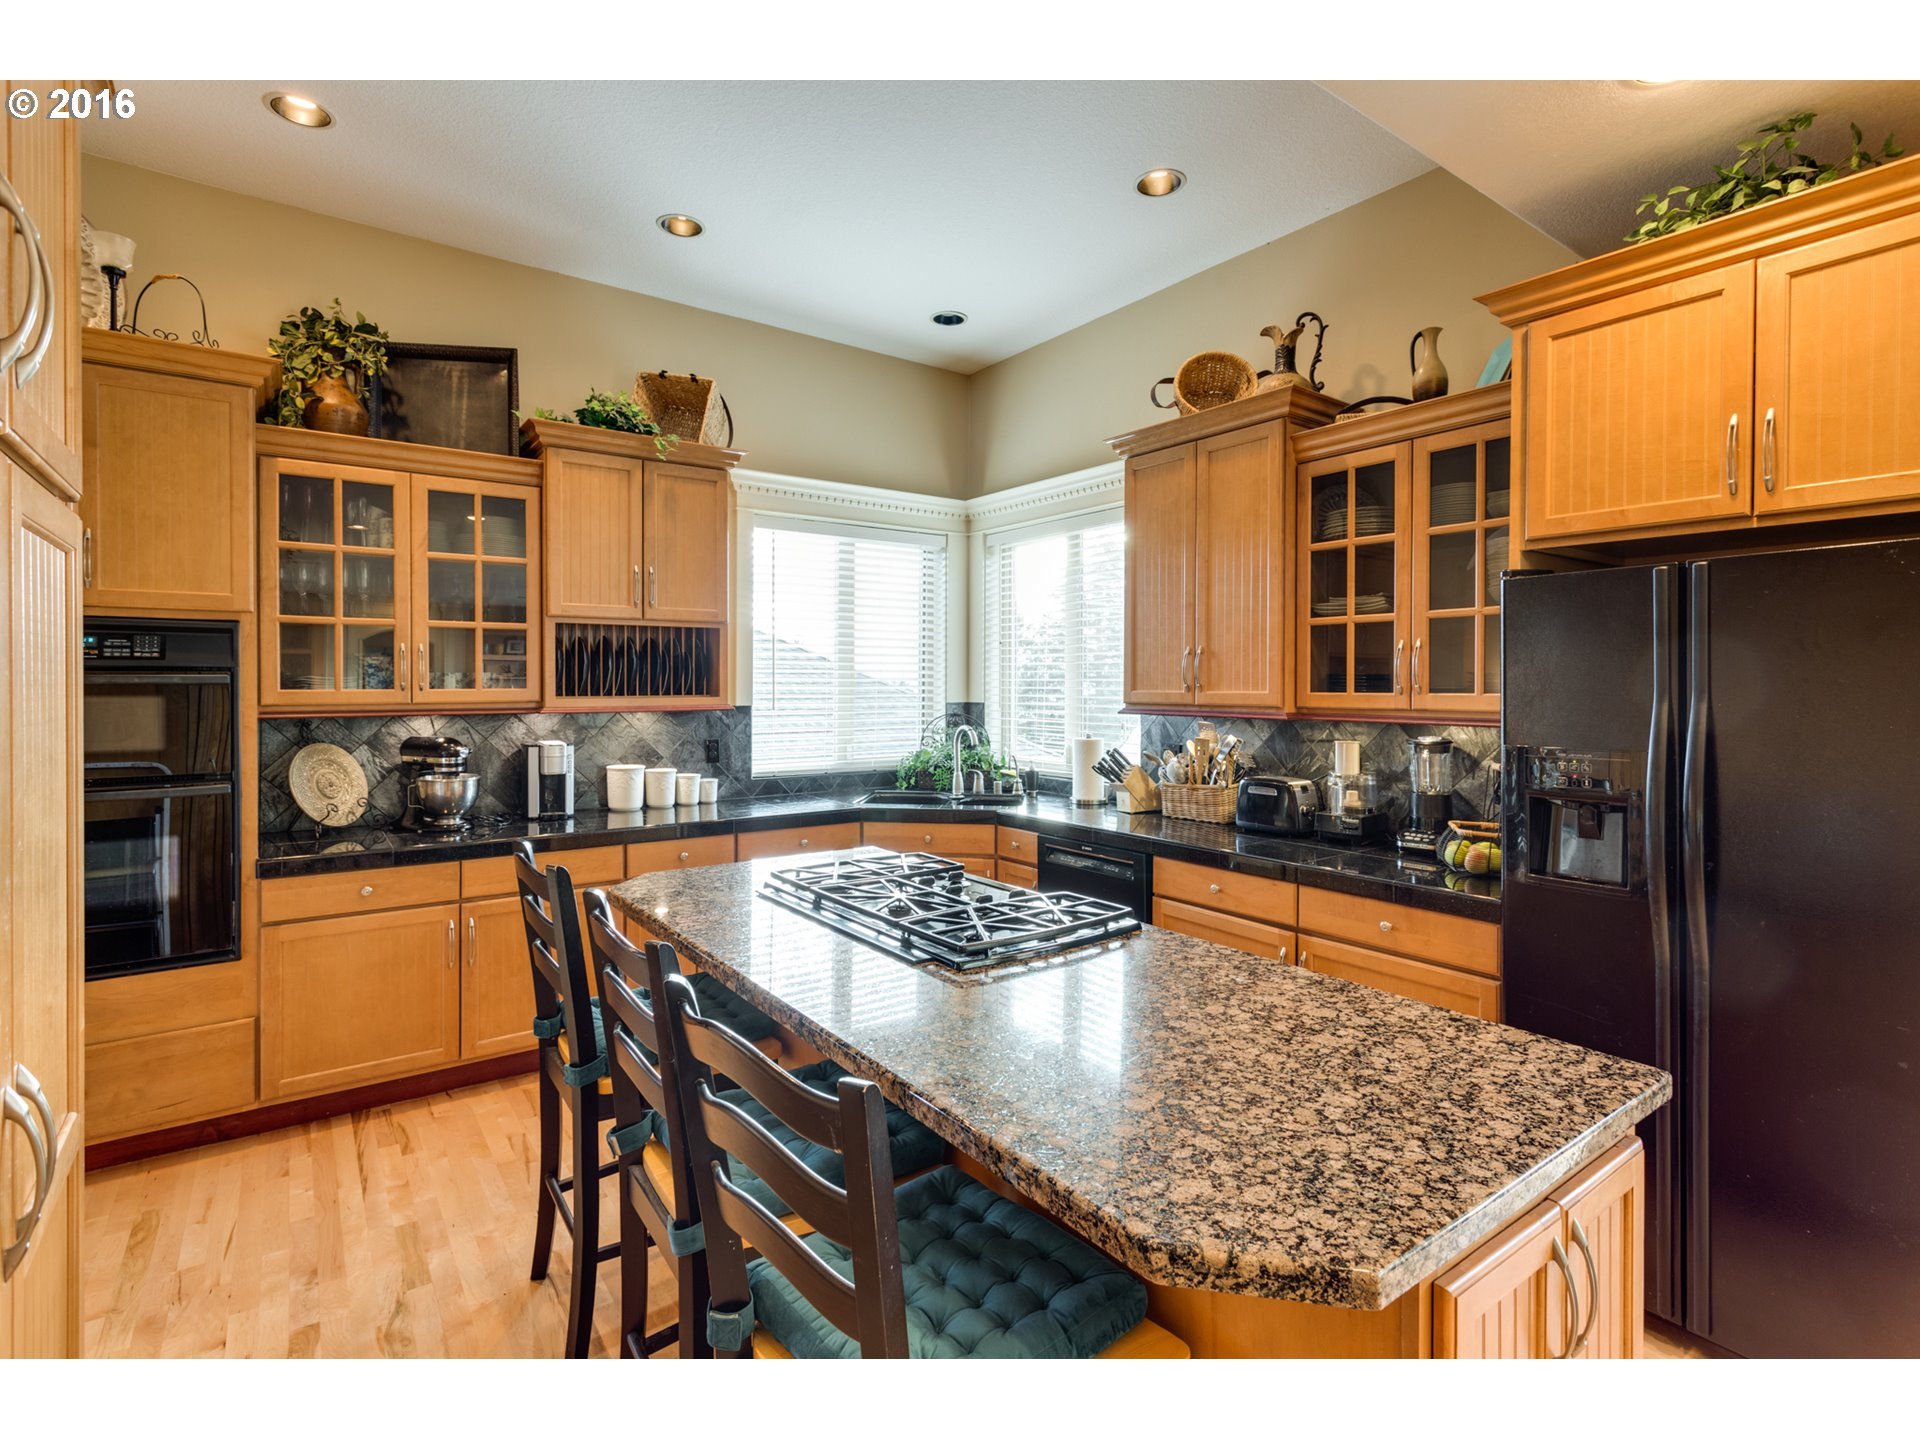 GRANITE KITCHEN MATT MORRIS 360-773-7333